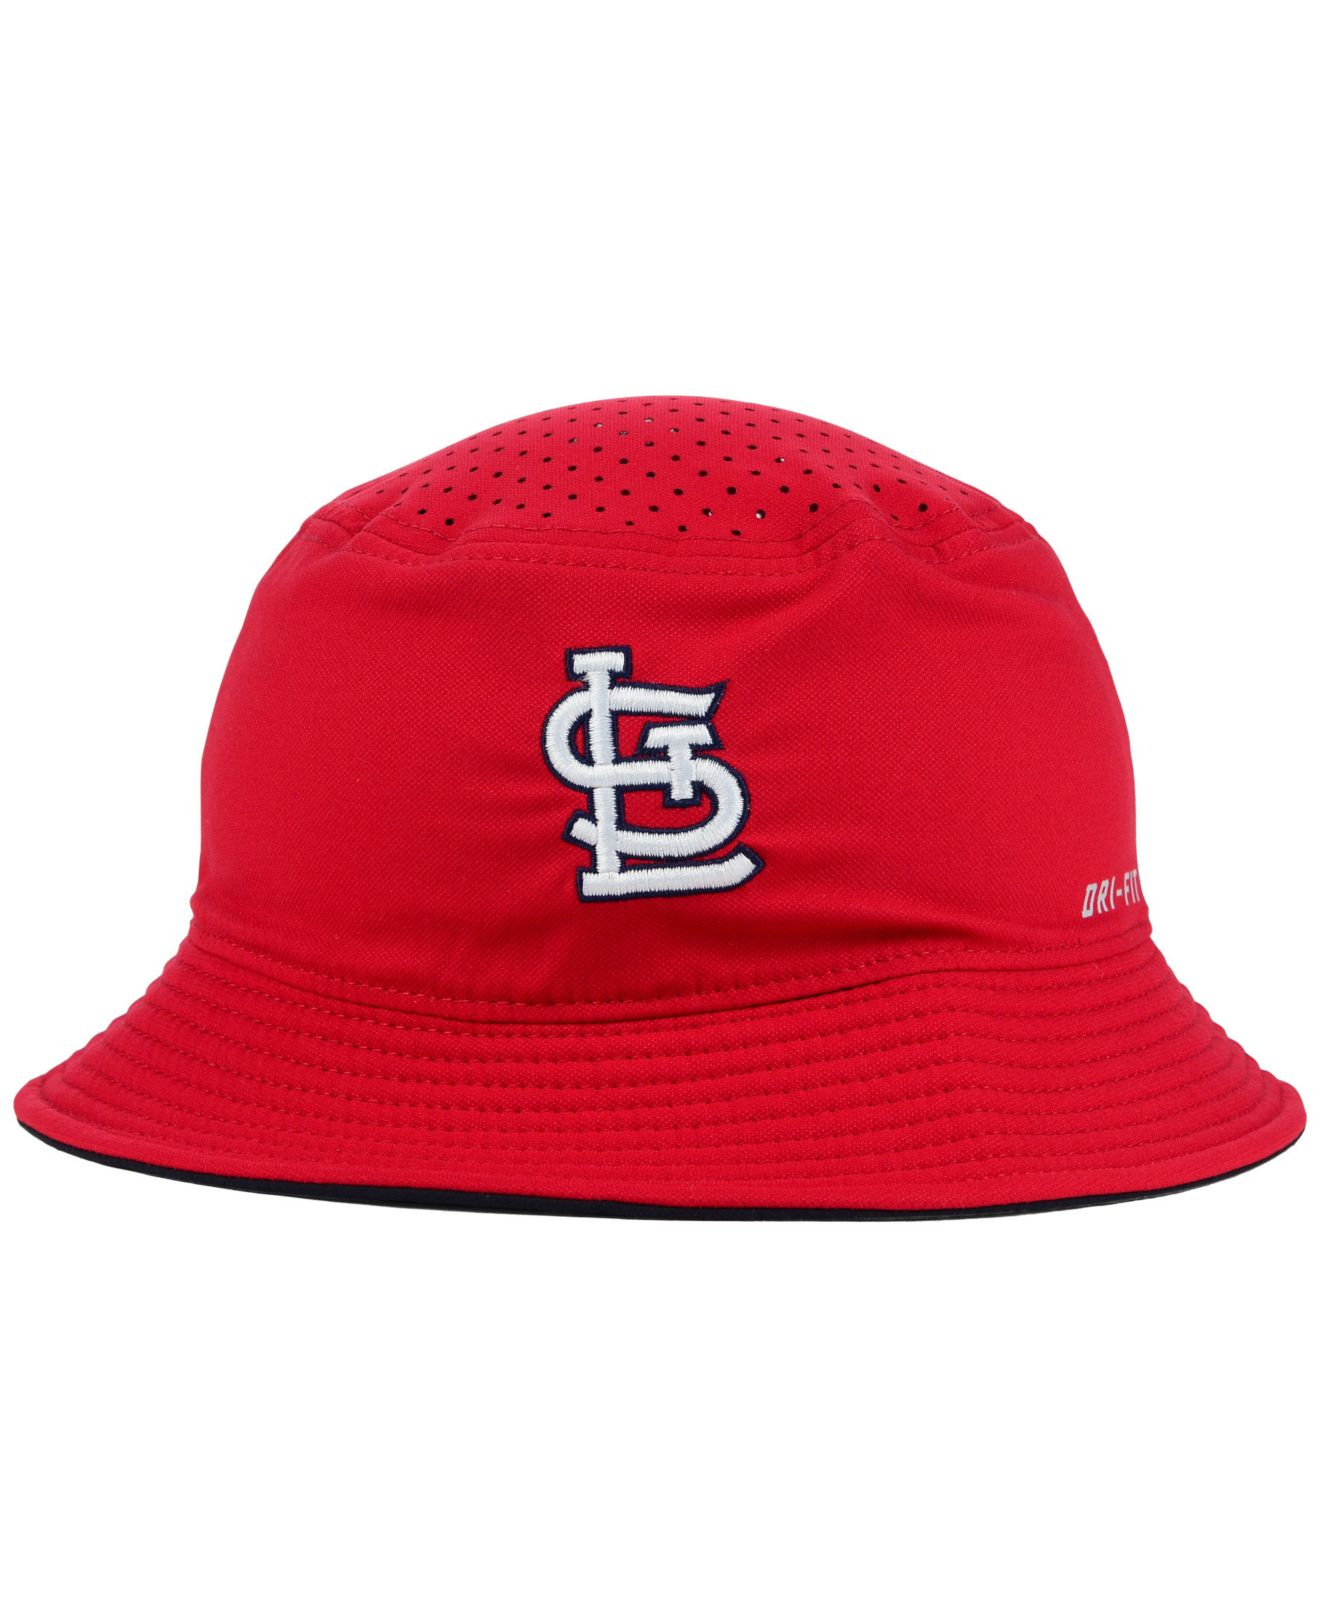 Lyst - Nike St. Louis Cardinals Vapor Dri-Fit Bucket Hat in Red for Men df9e633f4491